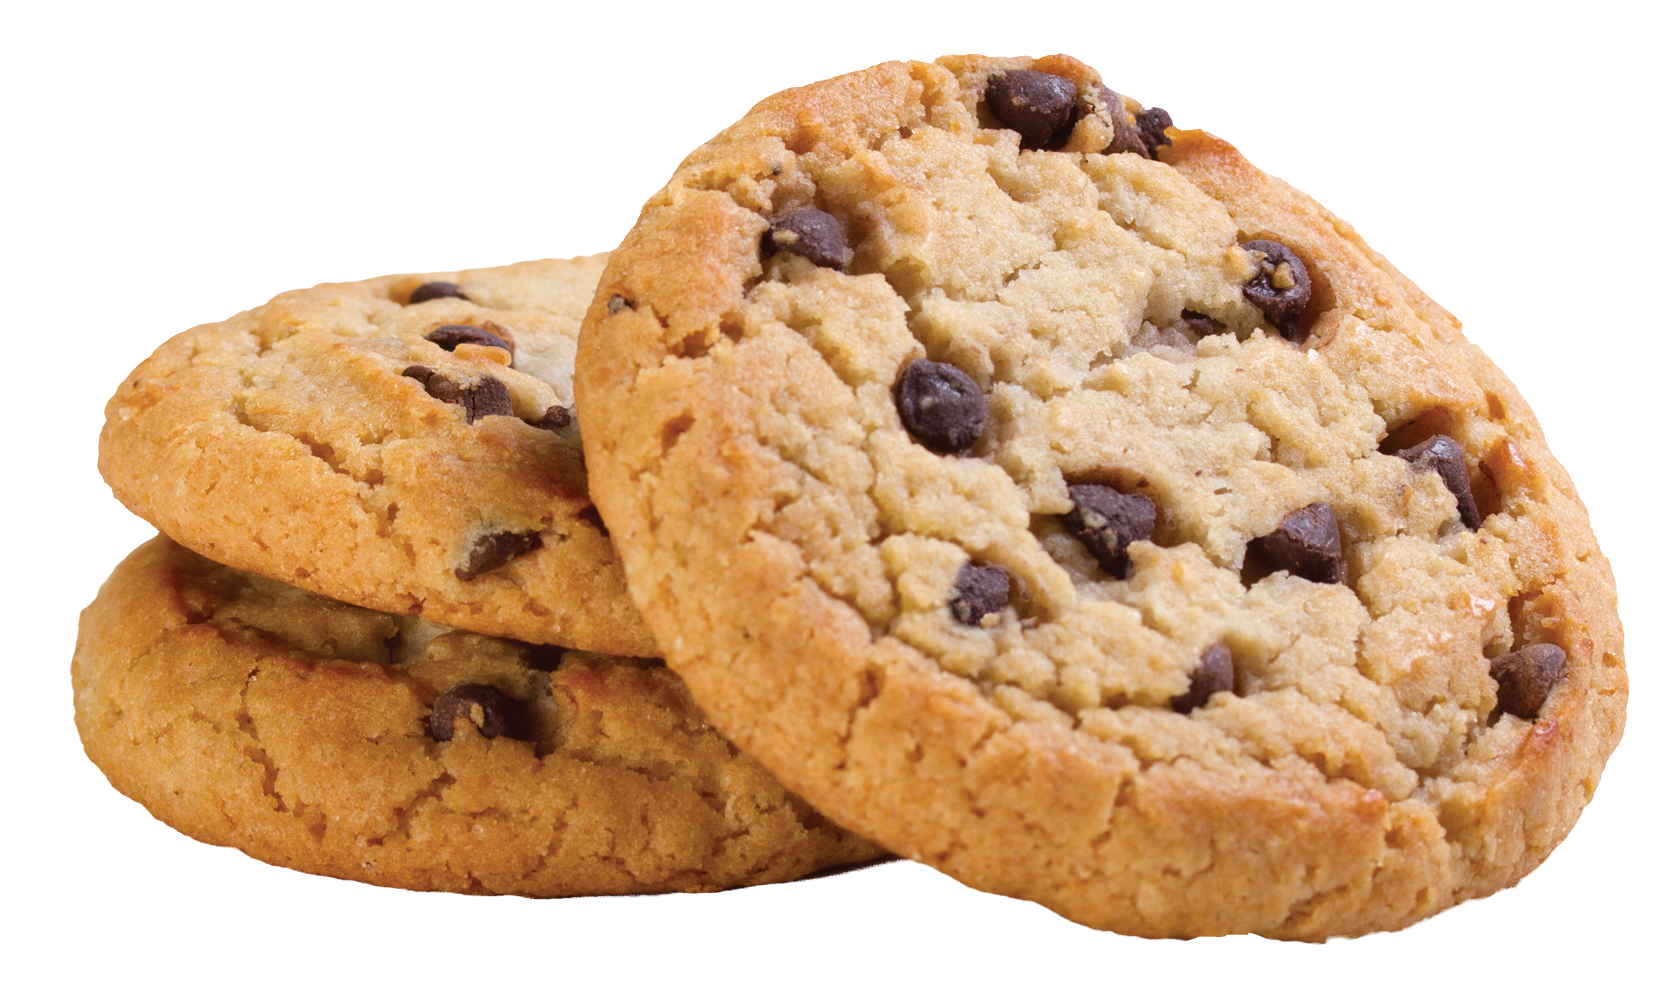 Cookie PNG Image - Biscuit PNG